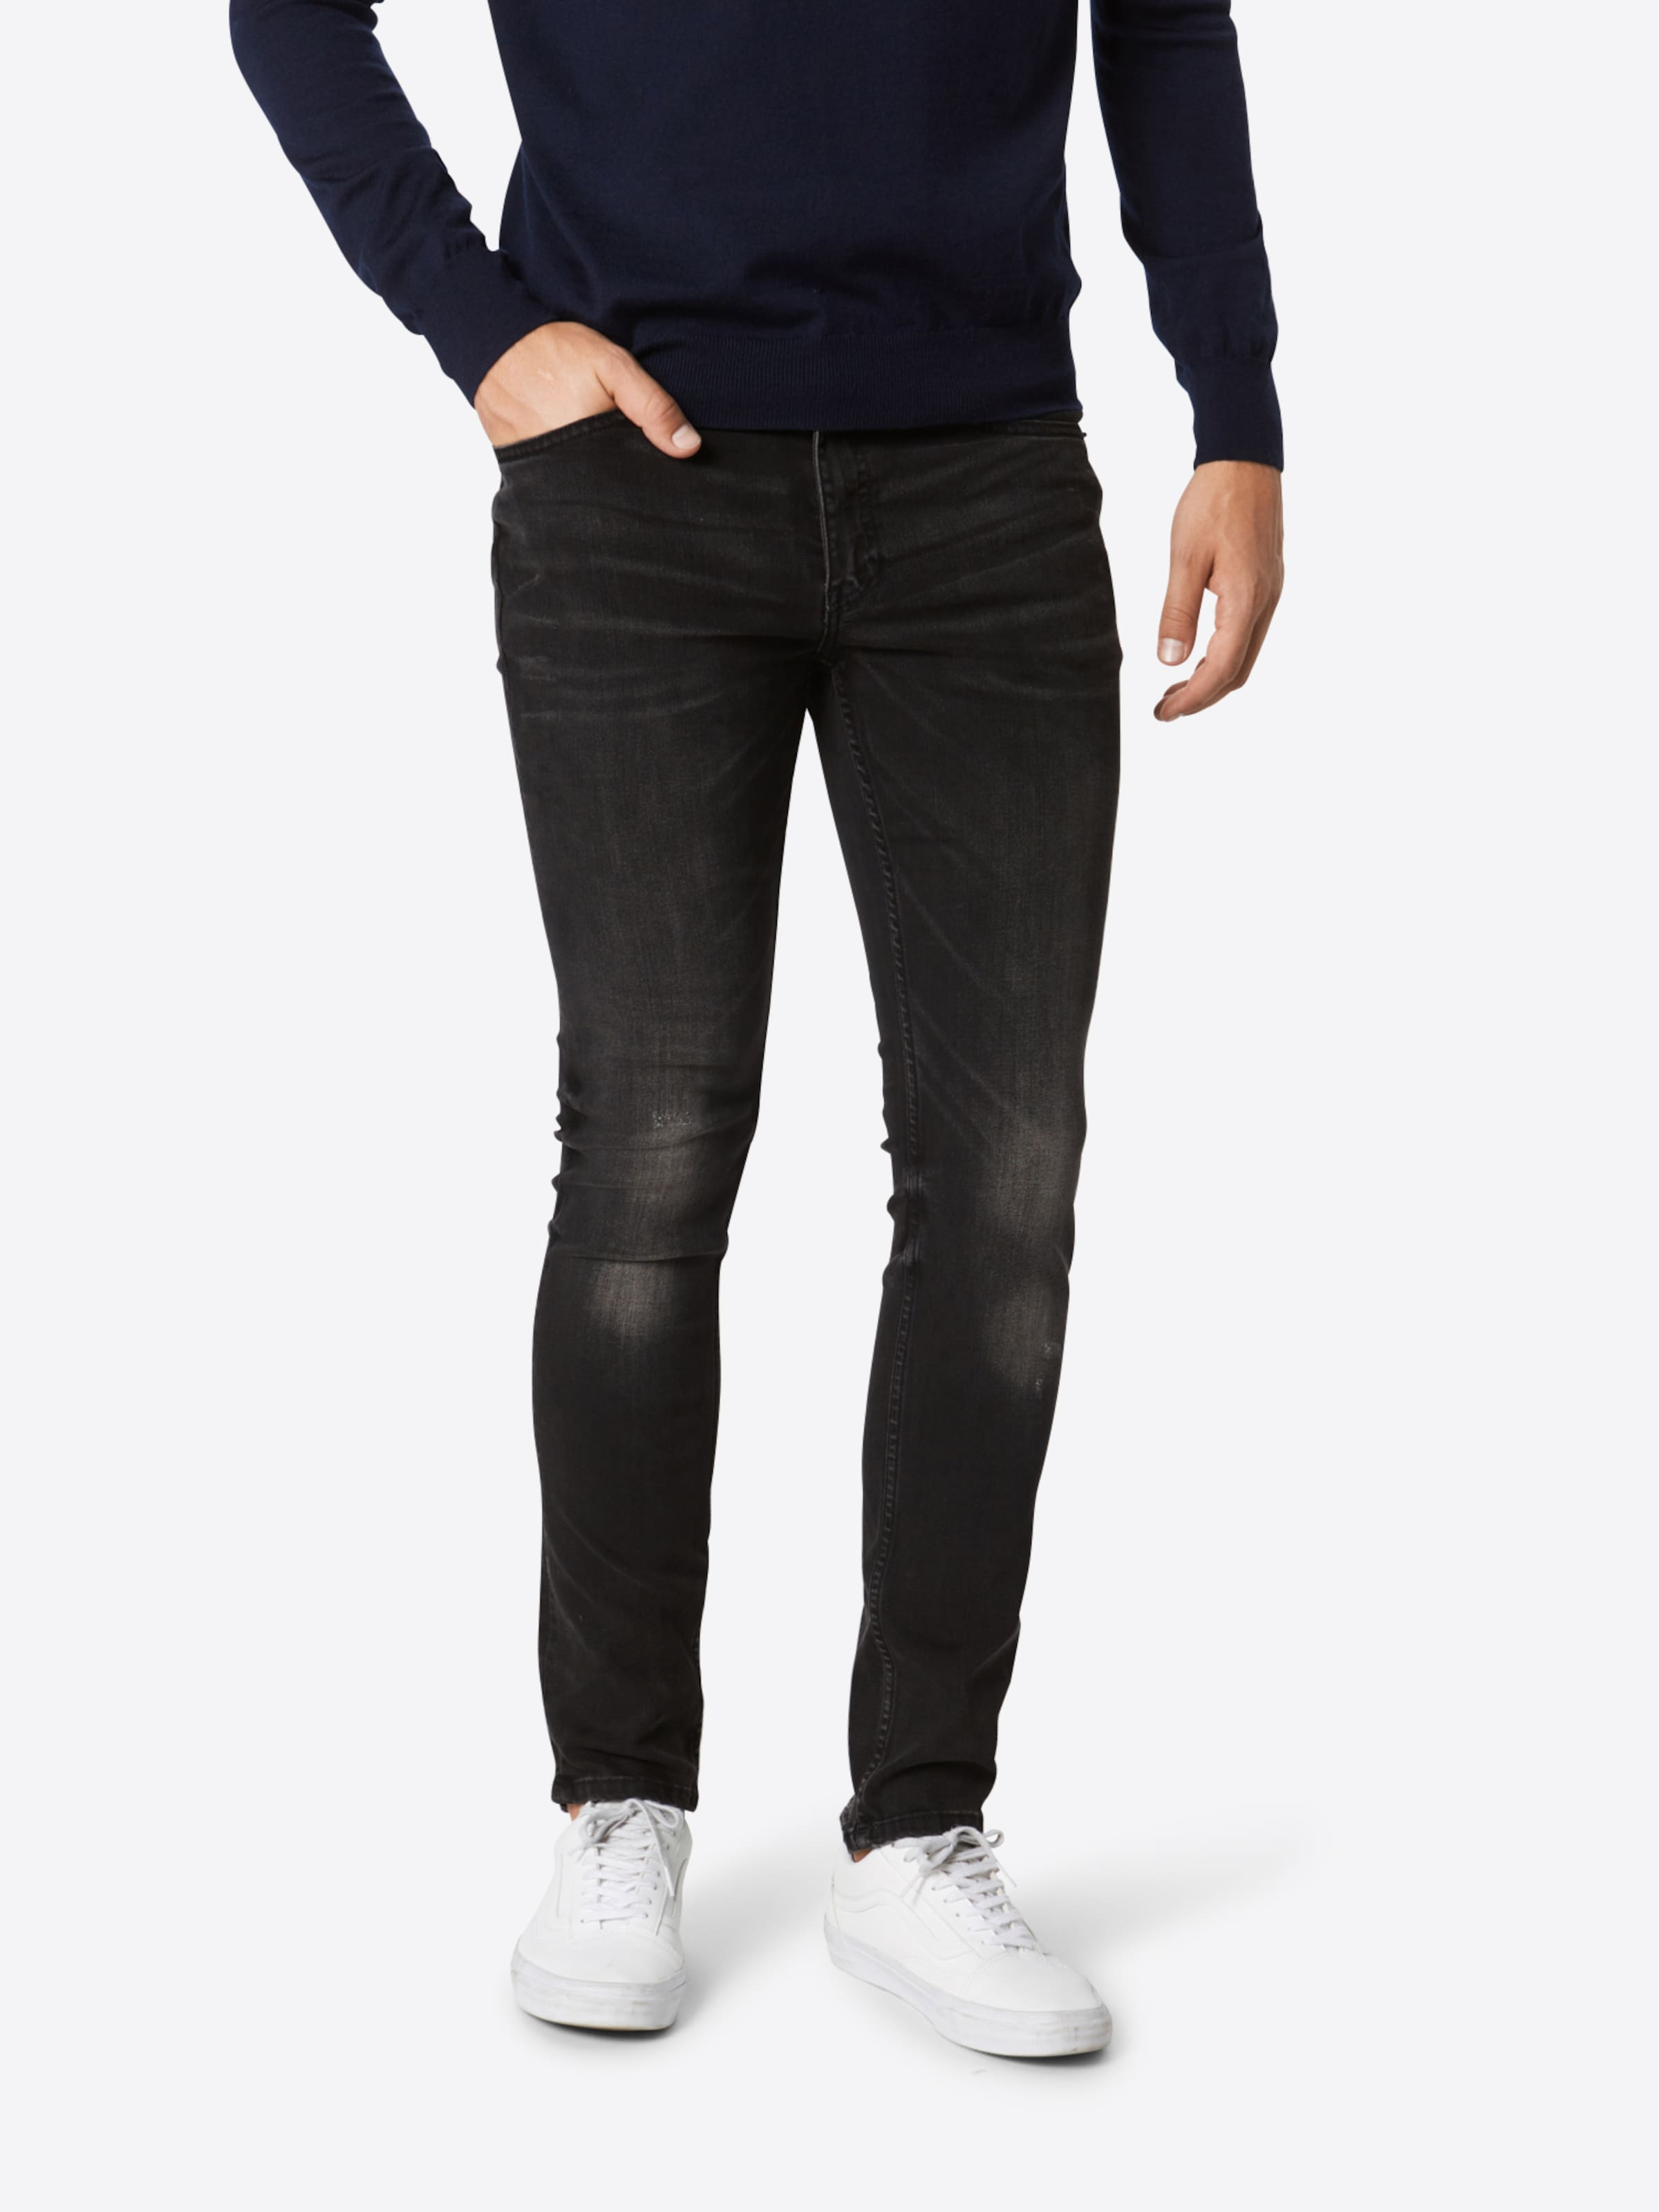 Jean Noir Denim Monday Cheap En N8wOnkP0X